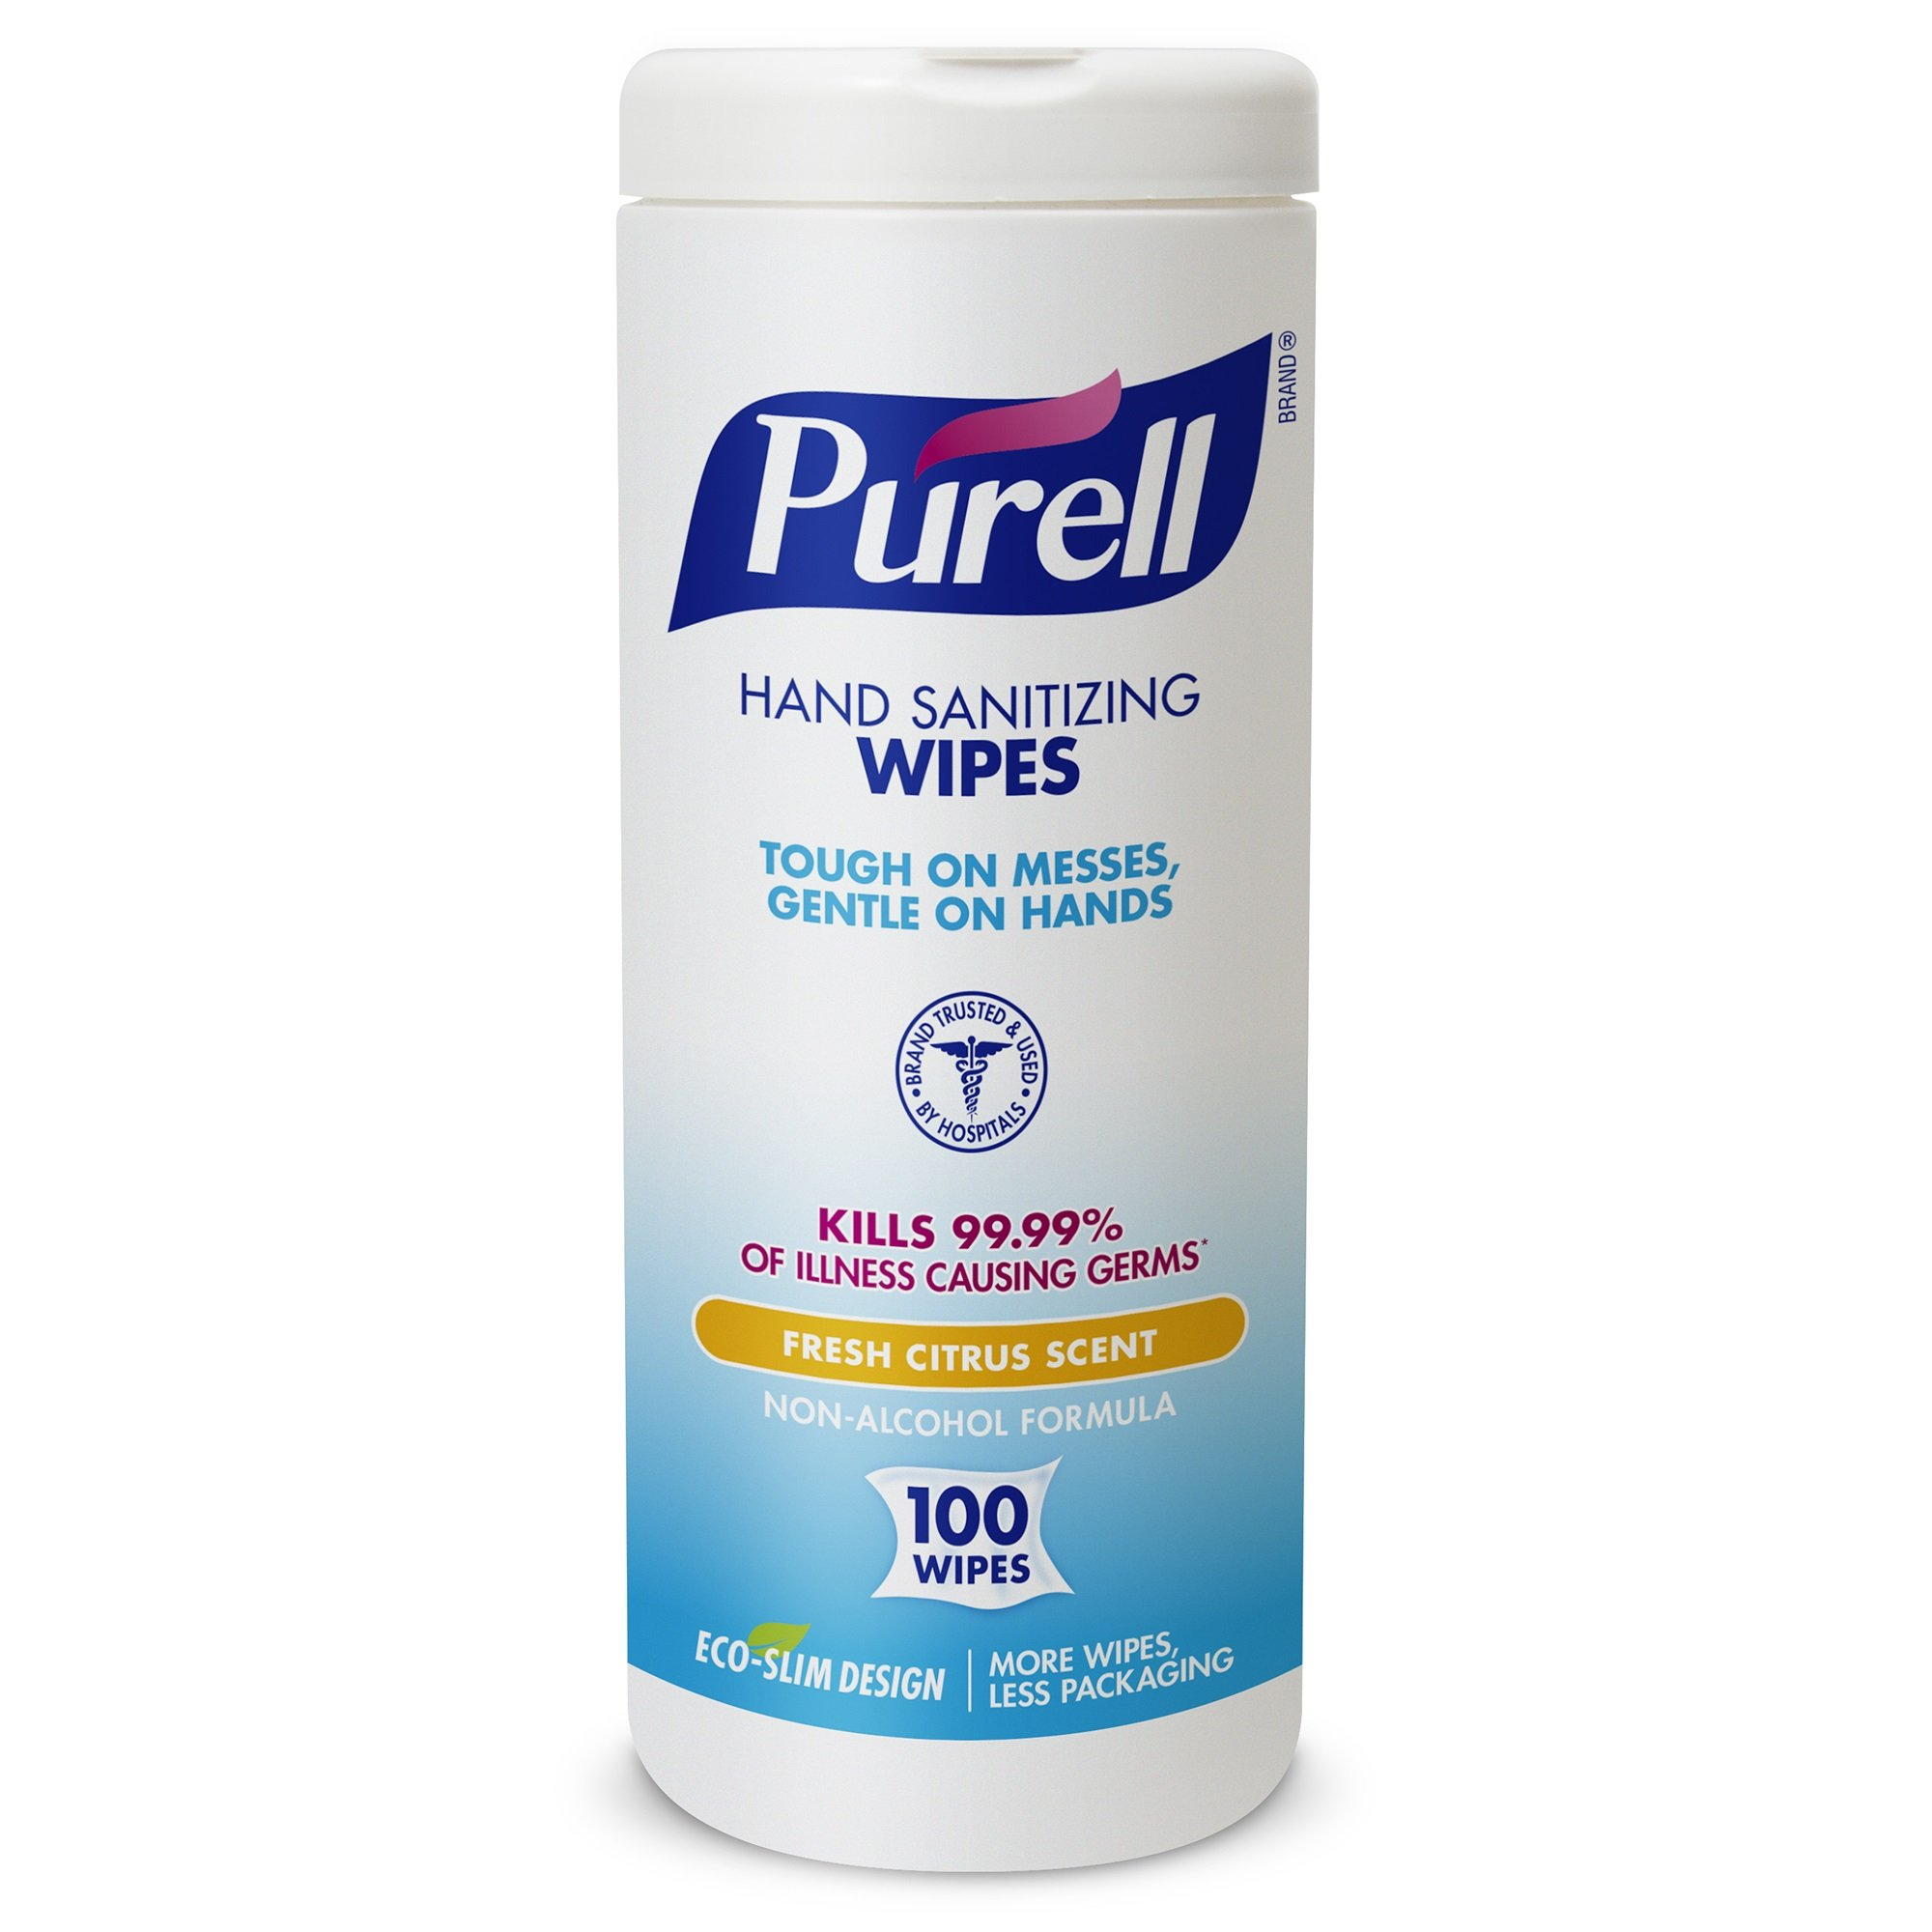 PURELL 9111-04-EC Sanitizing Wipes, 100 Count Canister (Case of 4)